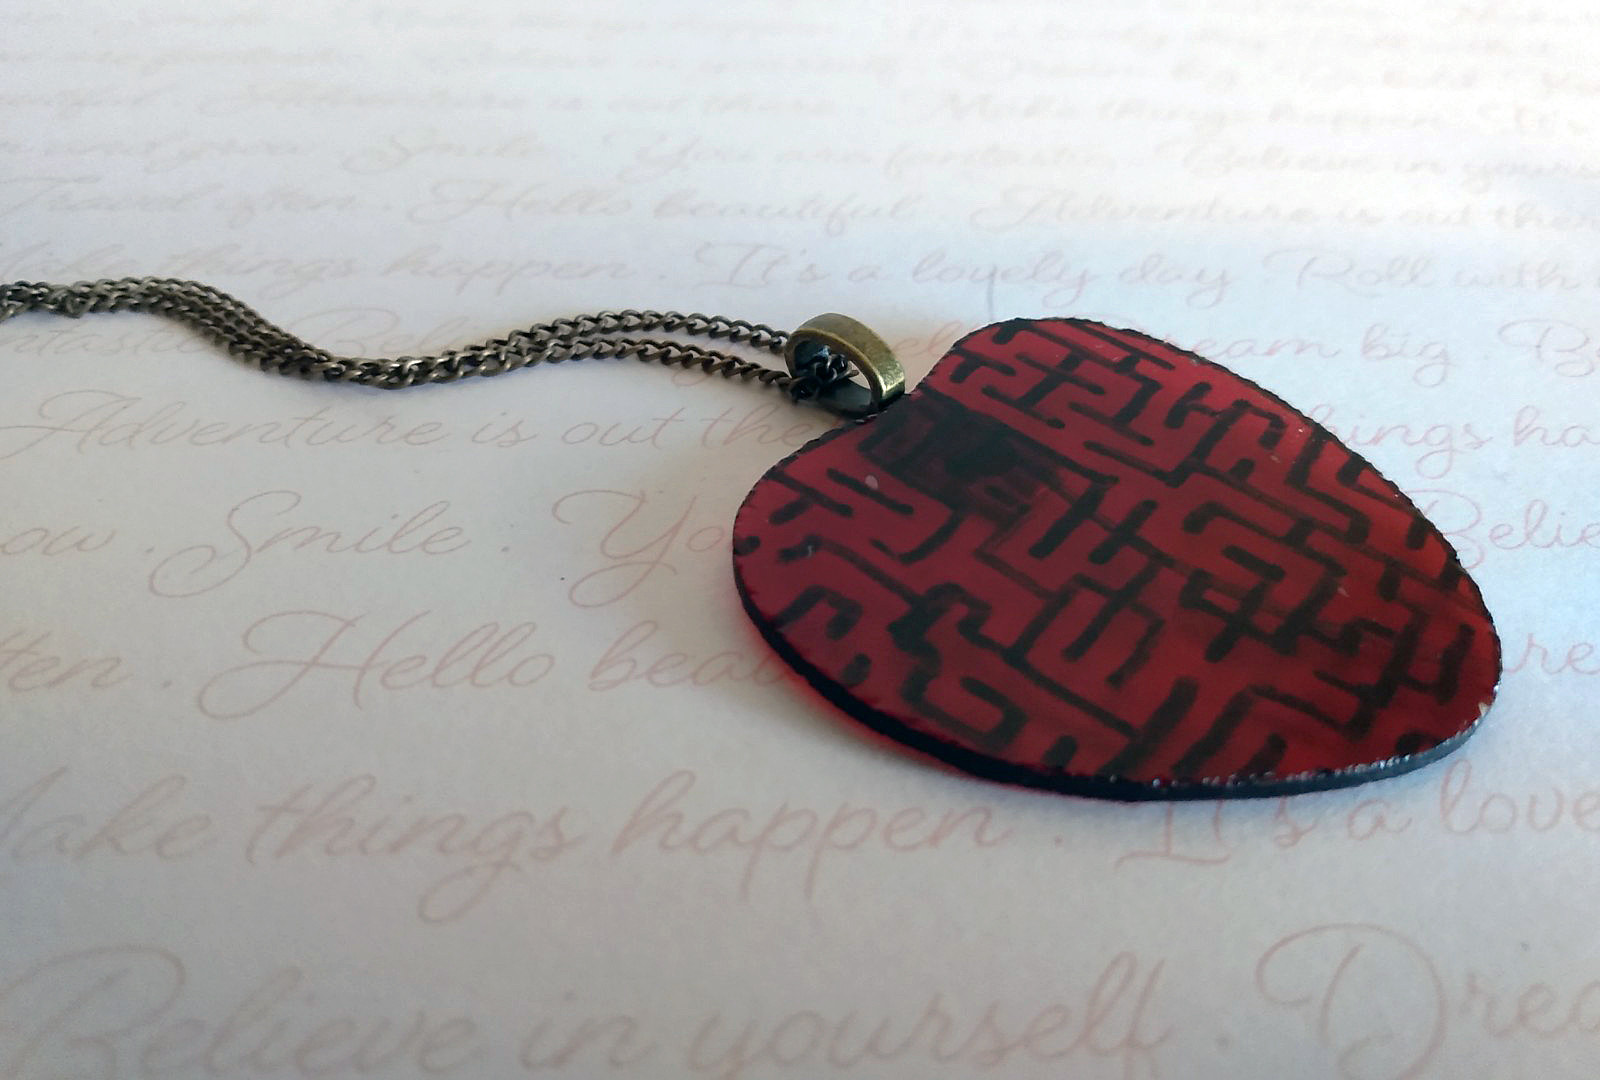 Labyrinth Heart Necklace.jpg